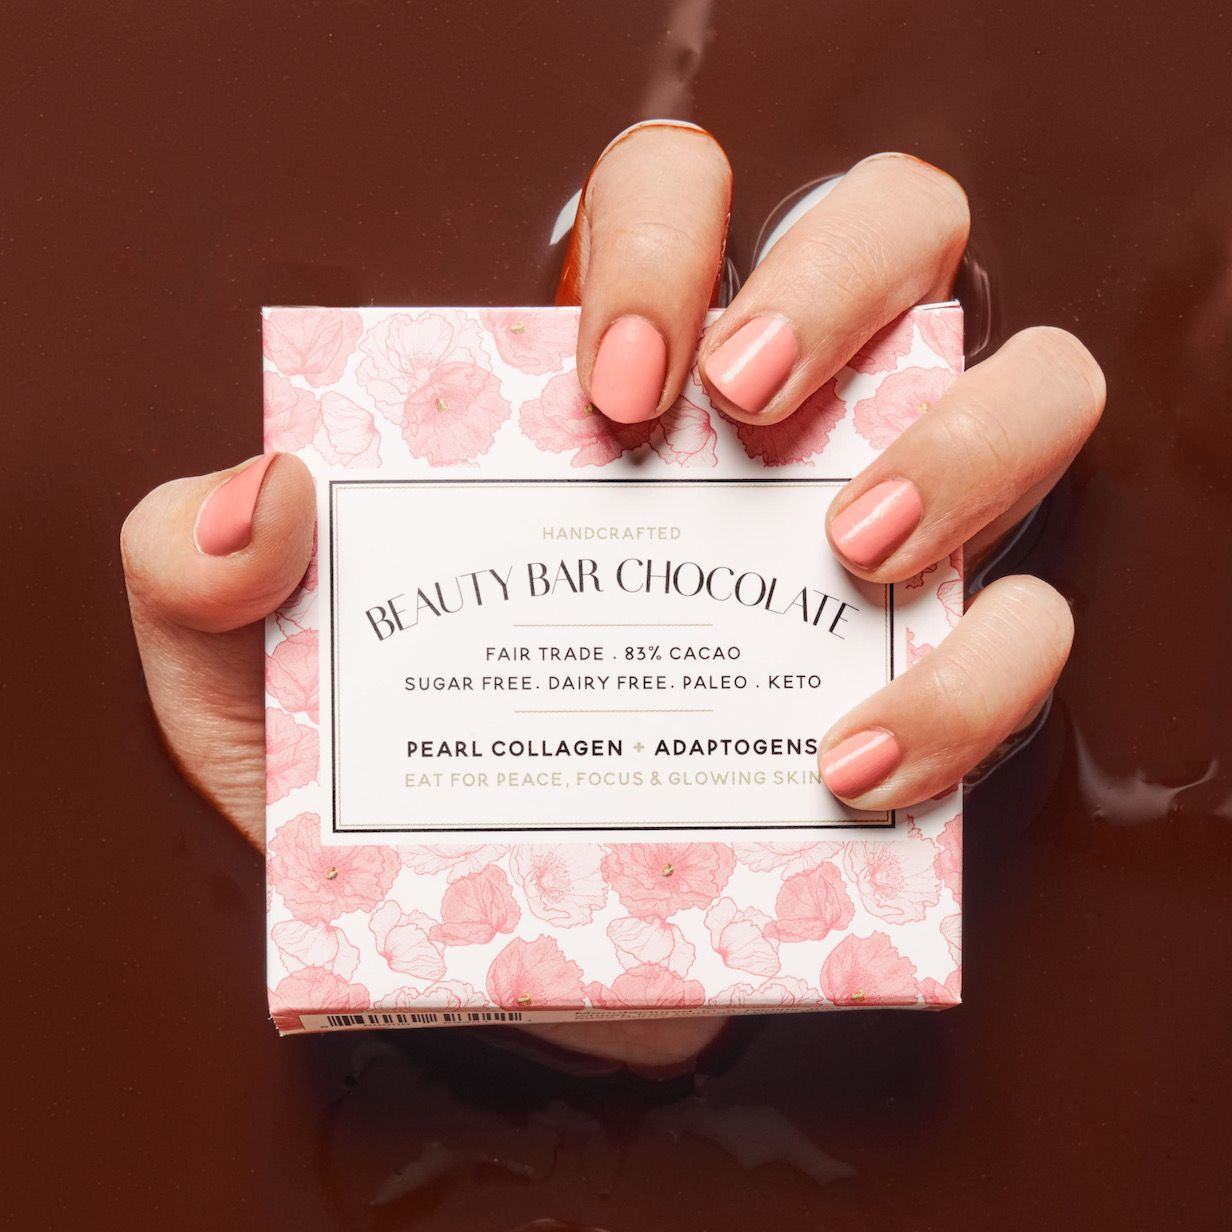 Beauty Bar Chocolate Image Nailed It Hand Holding Chocolate pink box coming through a chocolate backdrop